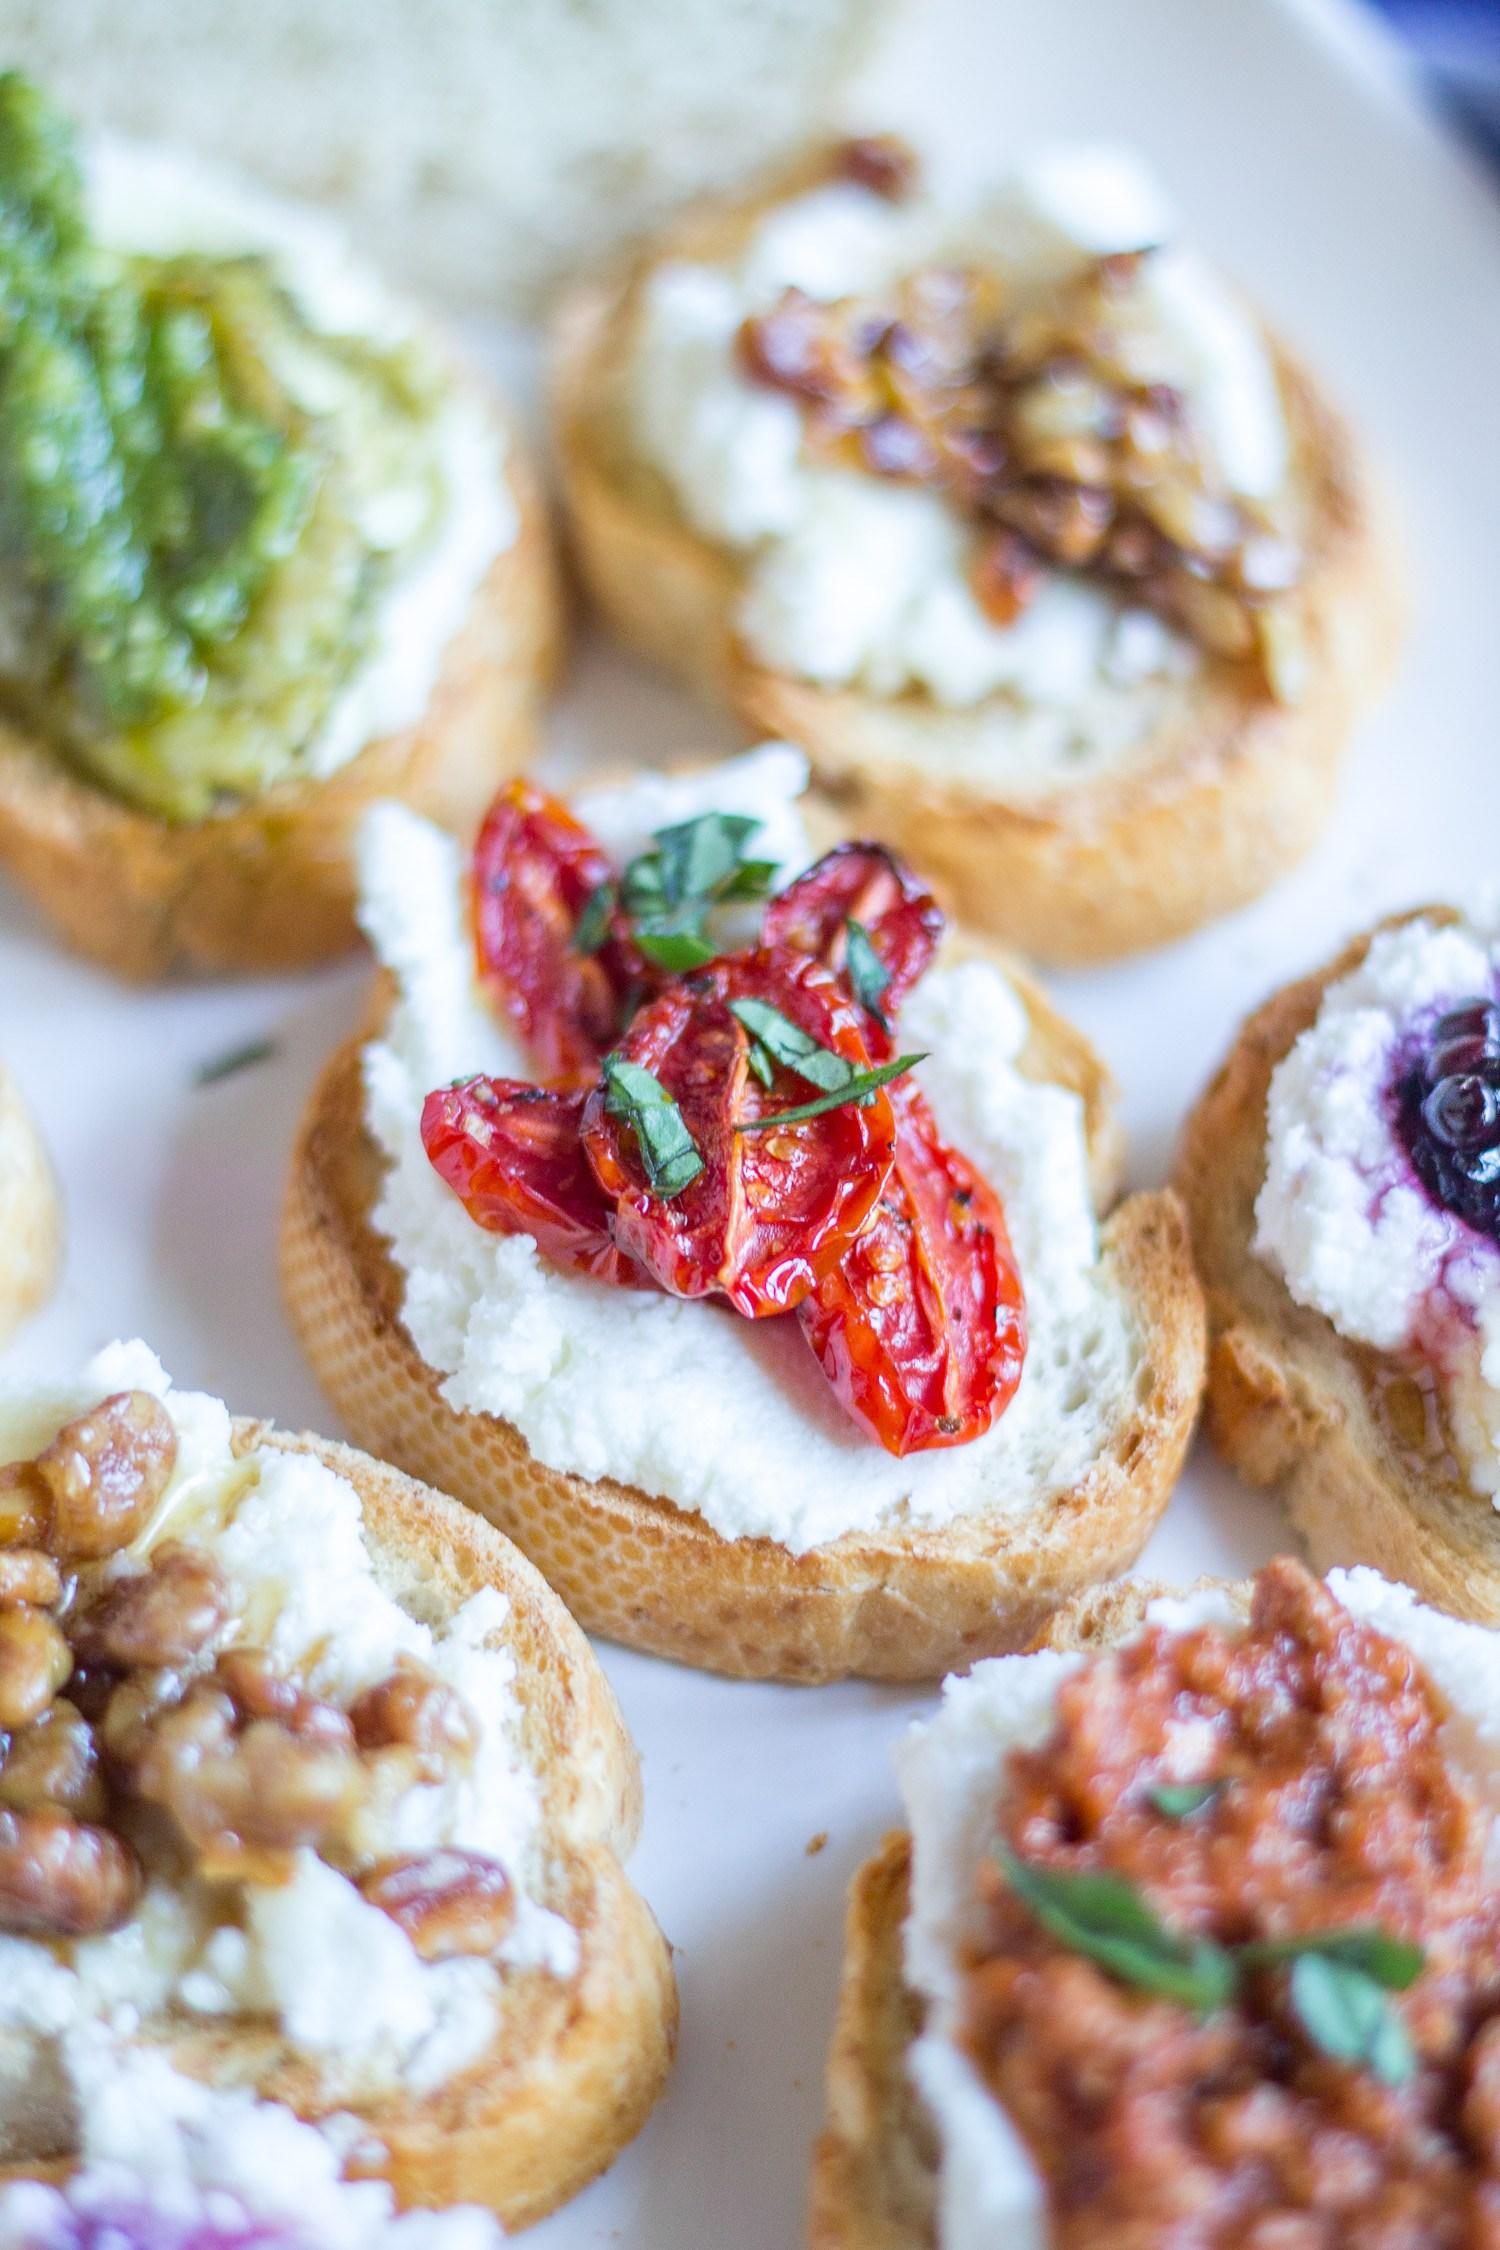 Creative ways to make Ricotta Toast, from The Kittchen, from this week's Linky Party!